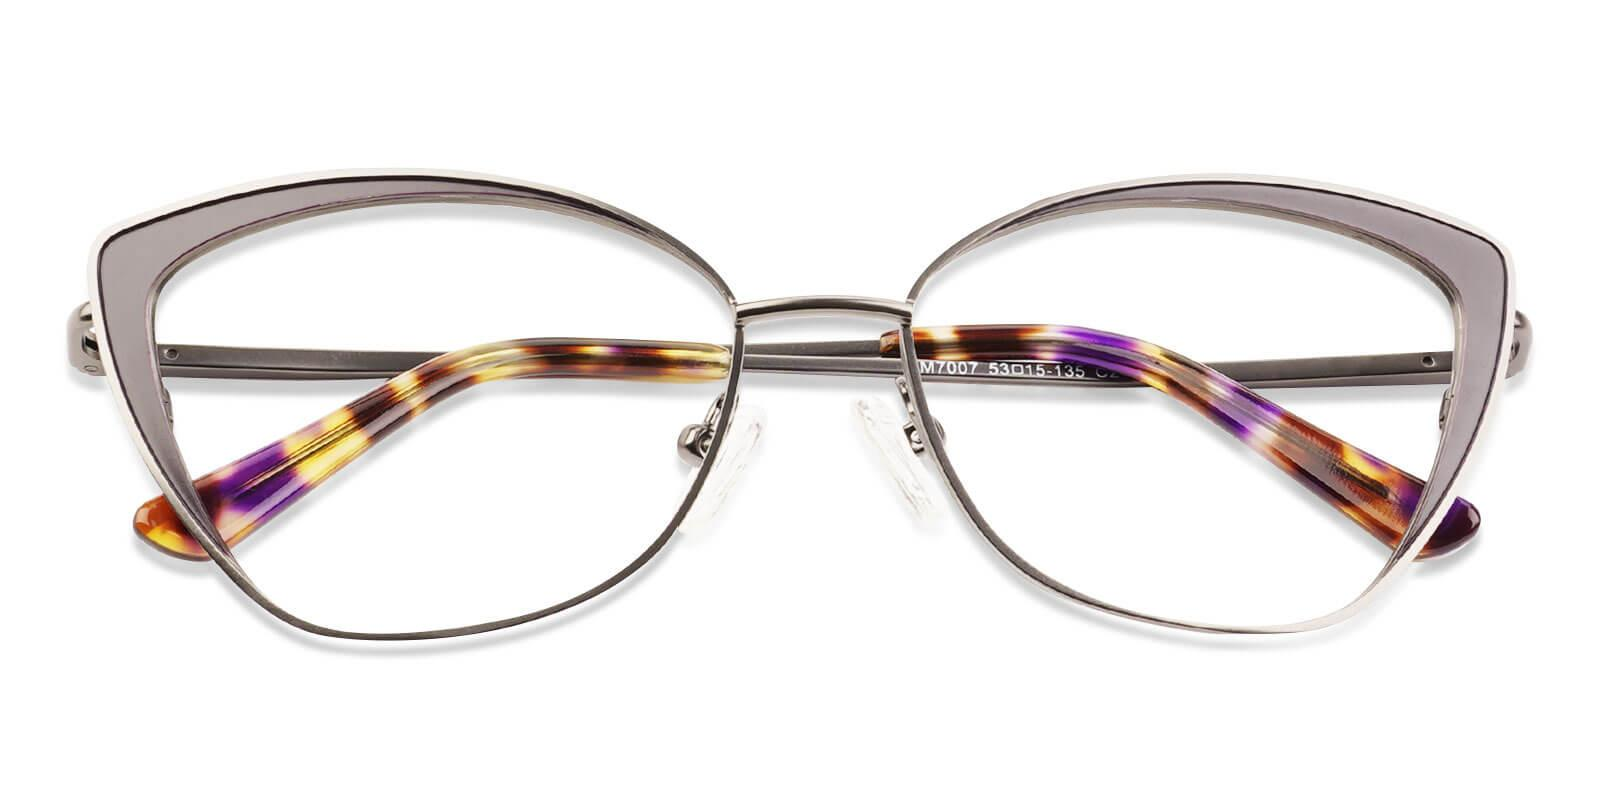 Paisley Gun Metal SpringHinges , Eyeglasses , NosePads Frames from ABBE Glasses